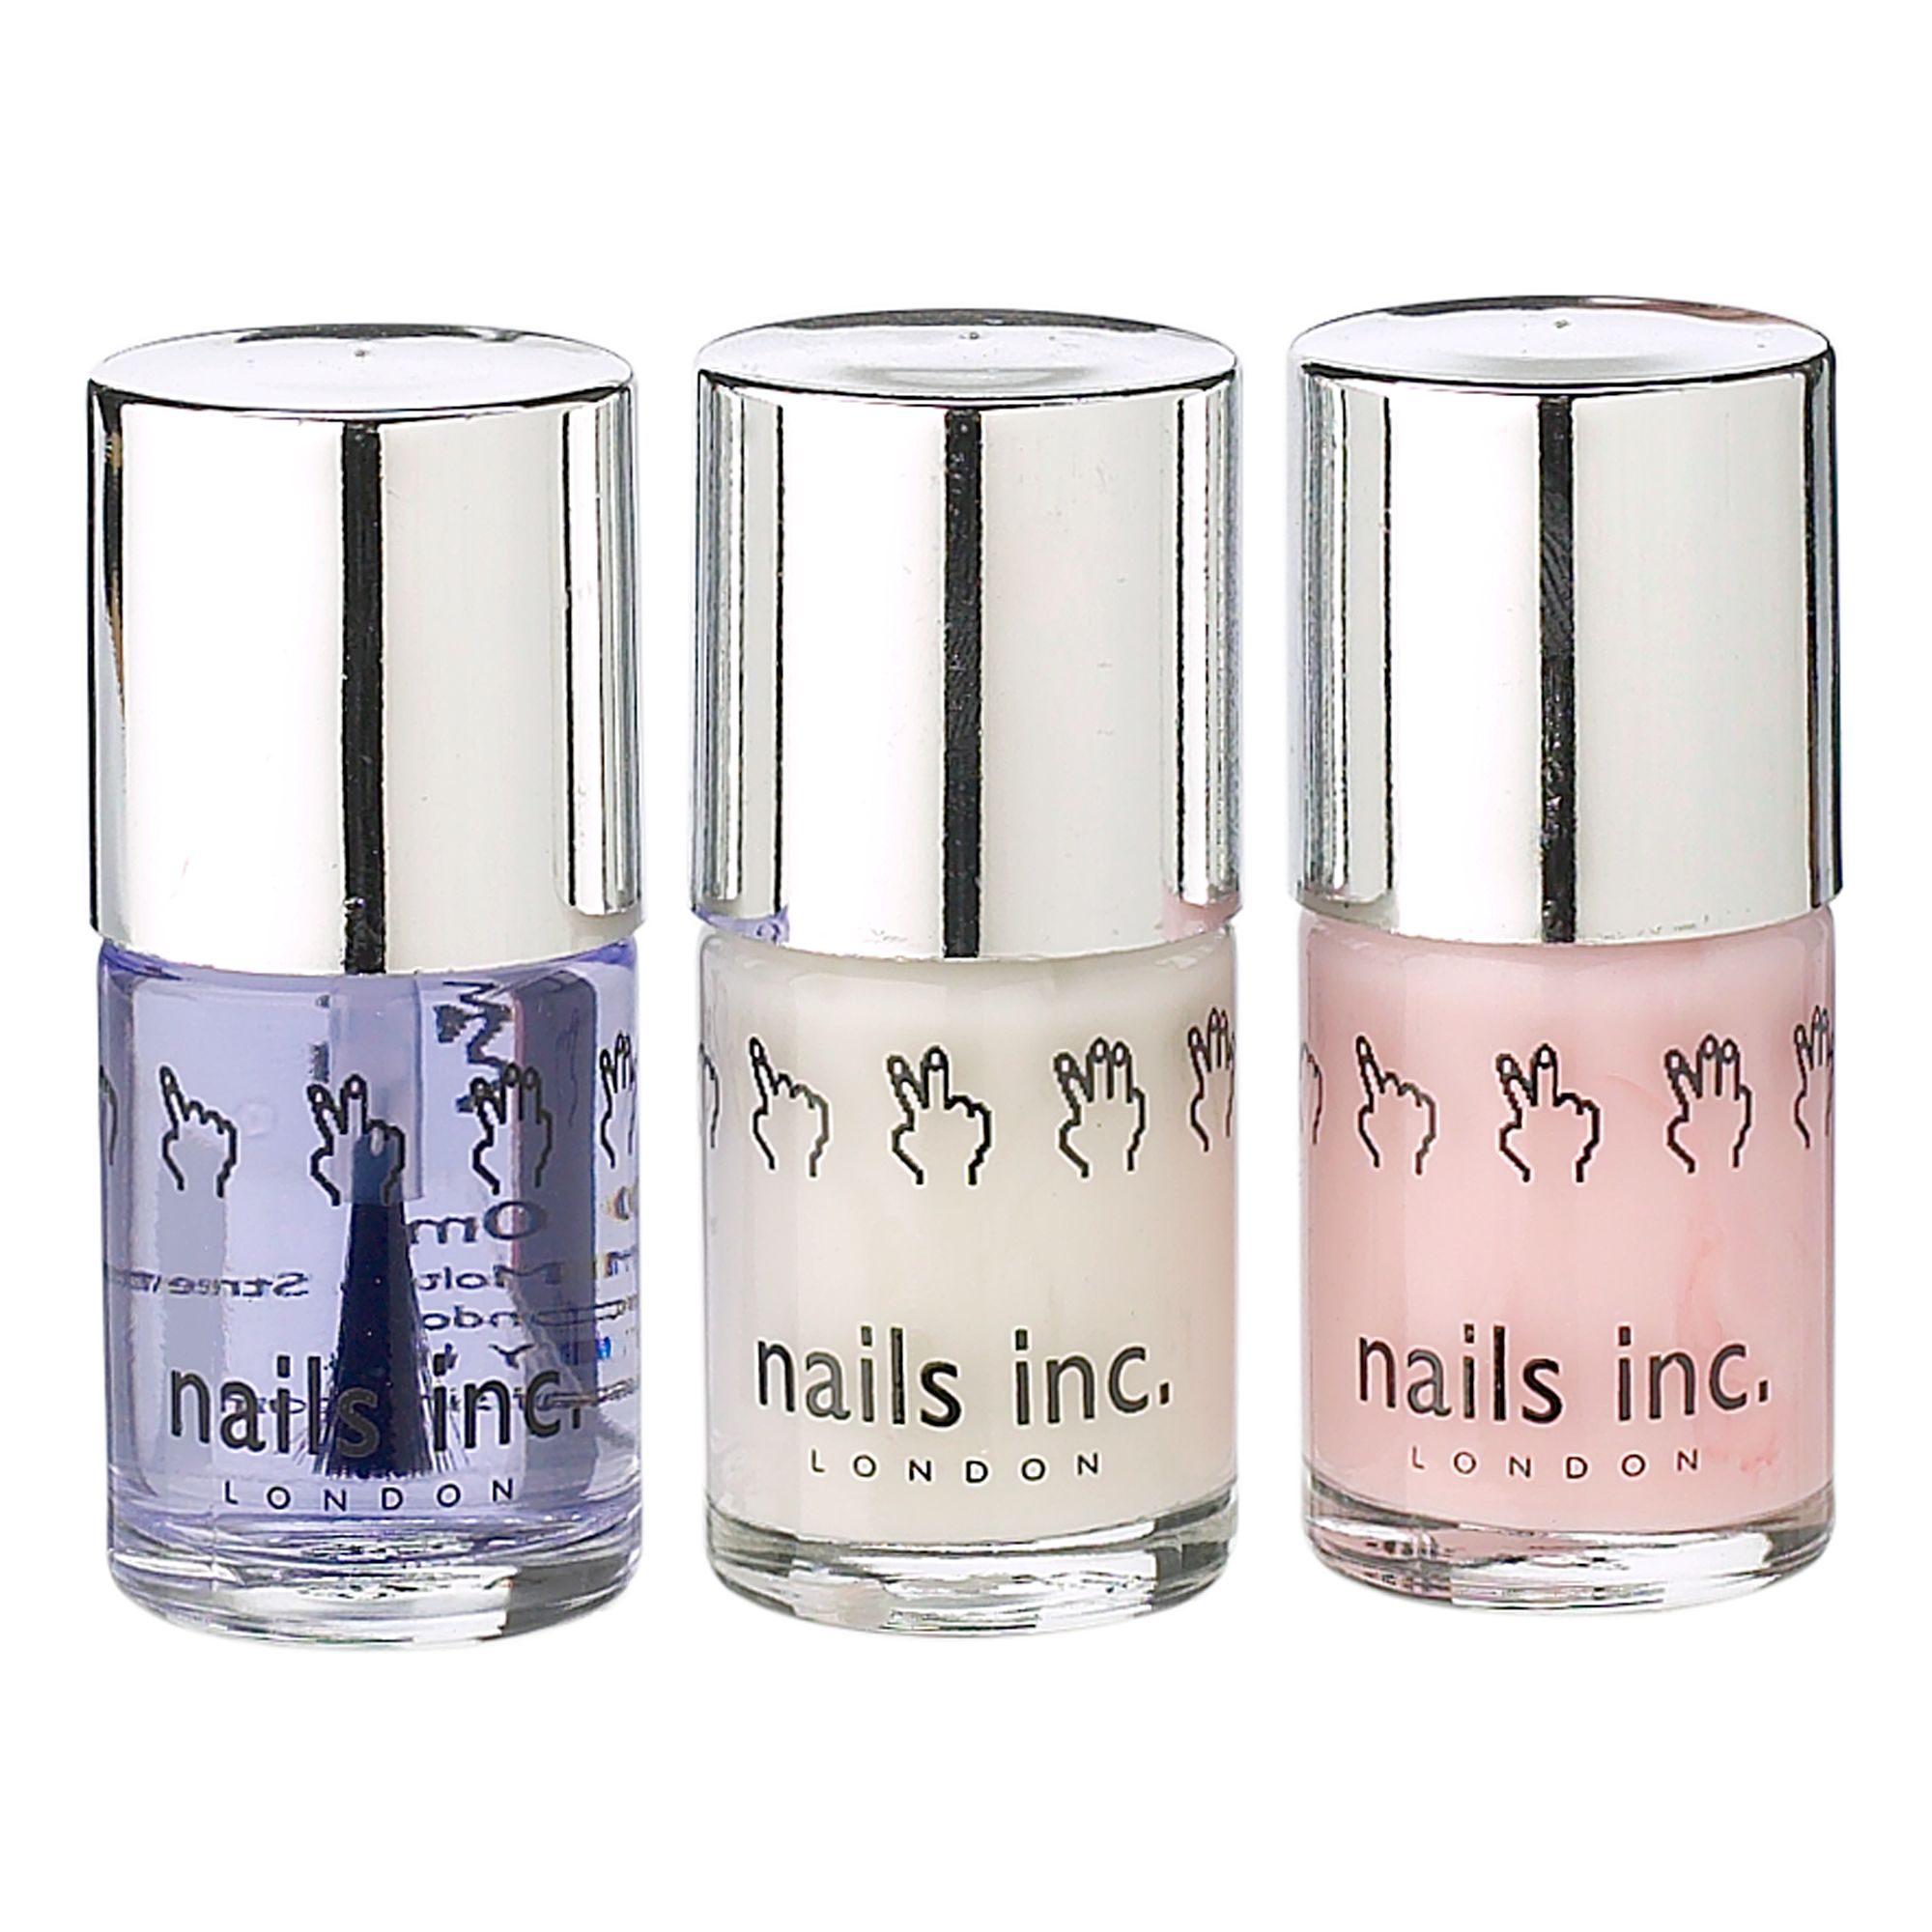 Nails Inc London manicure set product image